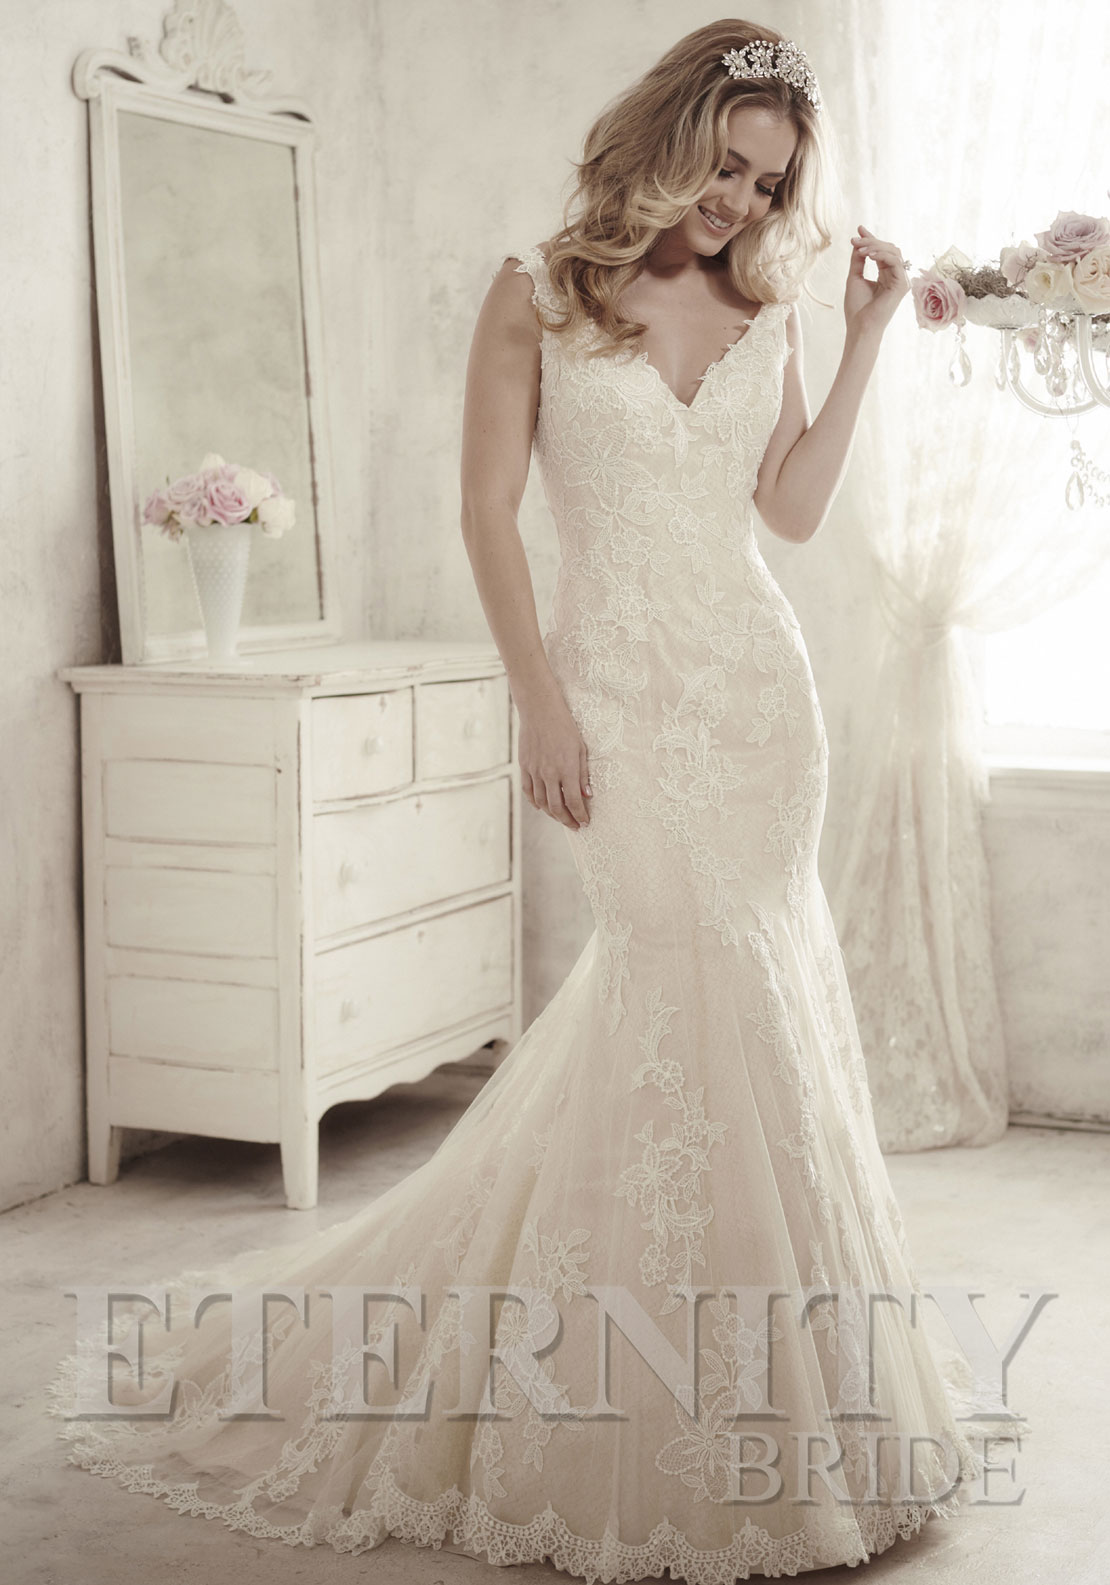 ETERNITY BRIDE BRIDAL 10S IVL